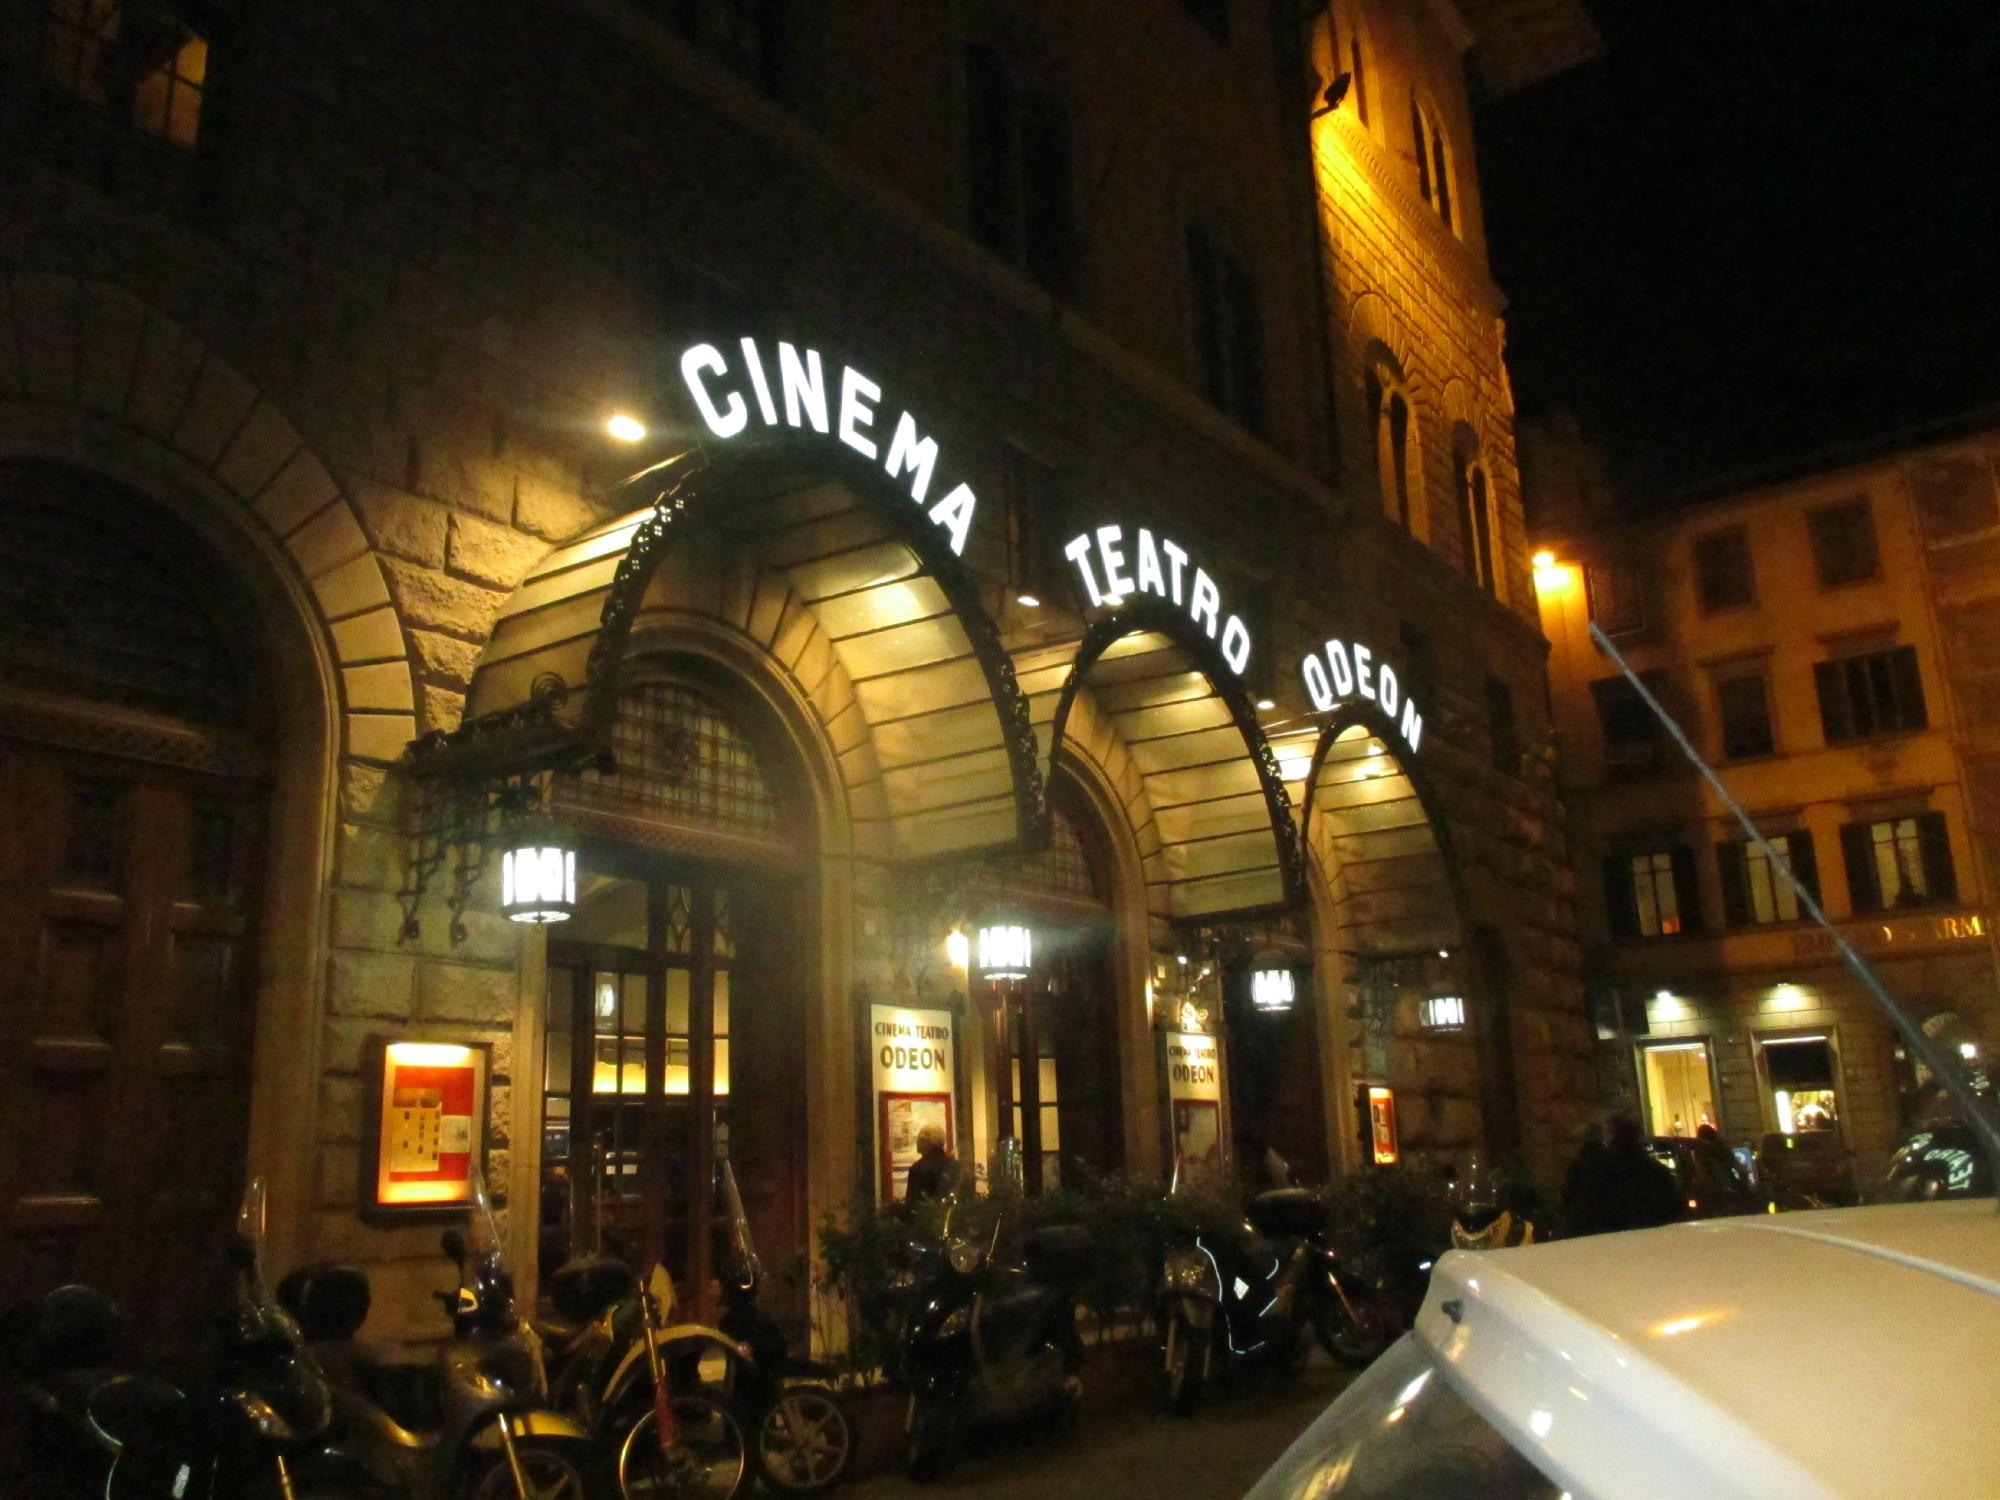 Cinema Odeon Firenze